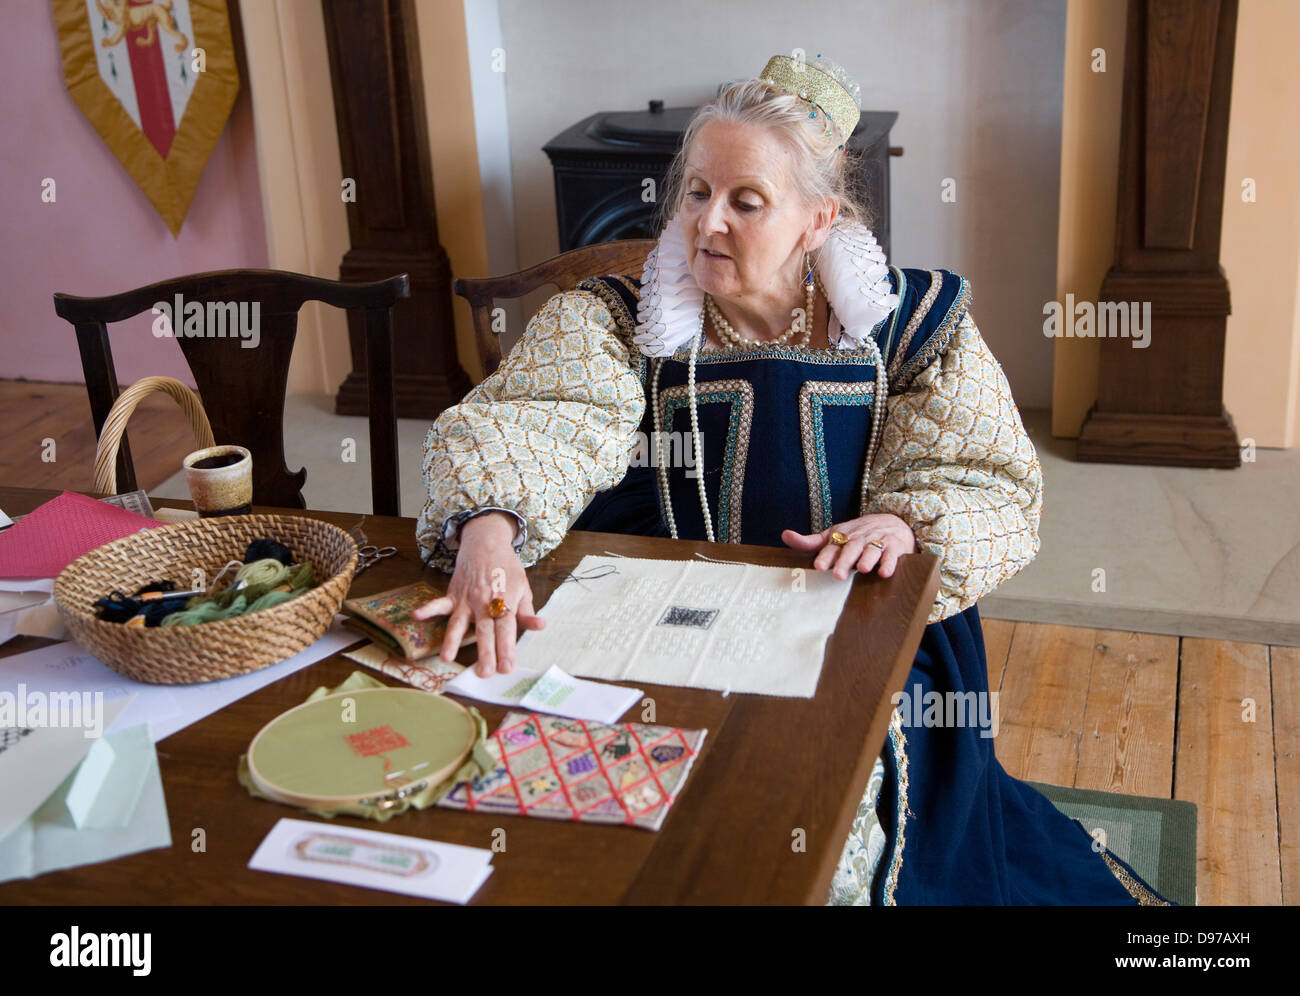 Seamstress in Tudor costume explaining sewing methods during history re-enactment day at Layer Marney Tower, Essex, - Stock Image